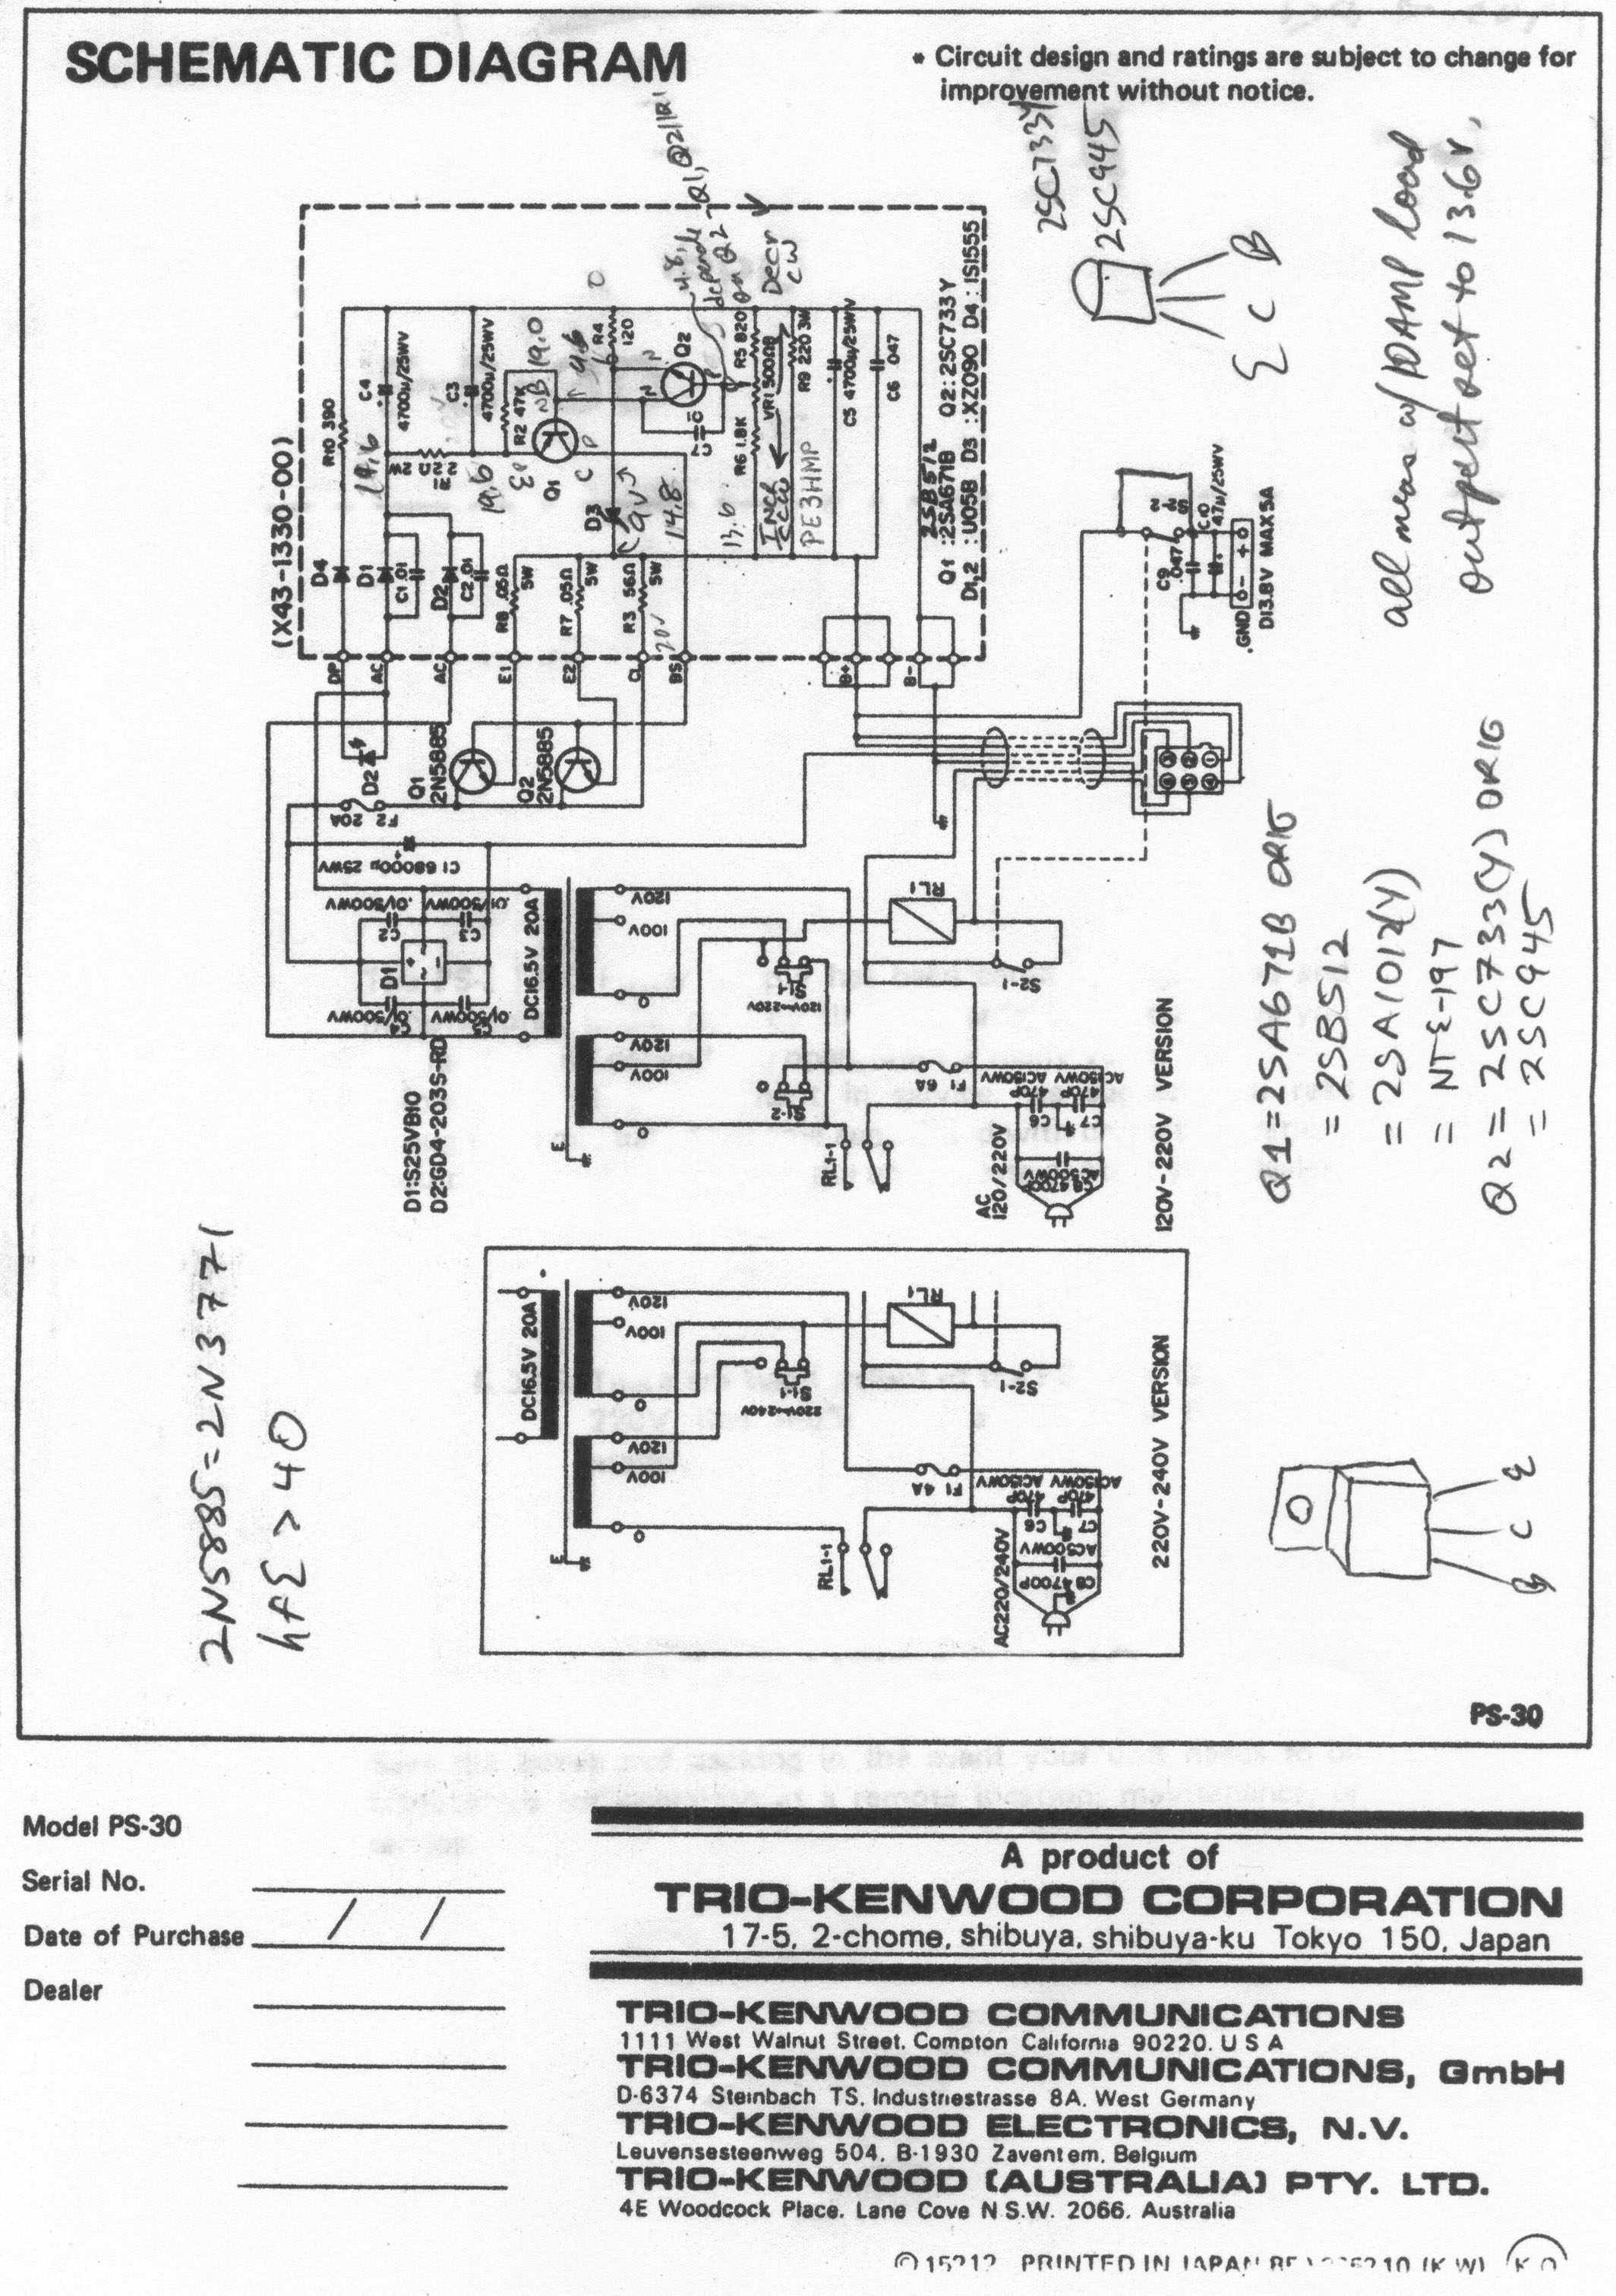 Kpg46 Wiring Diagram